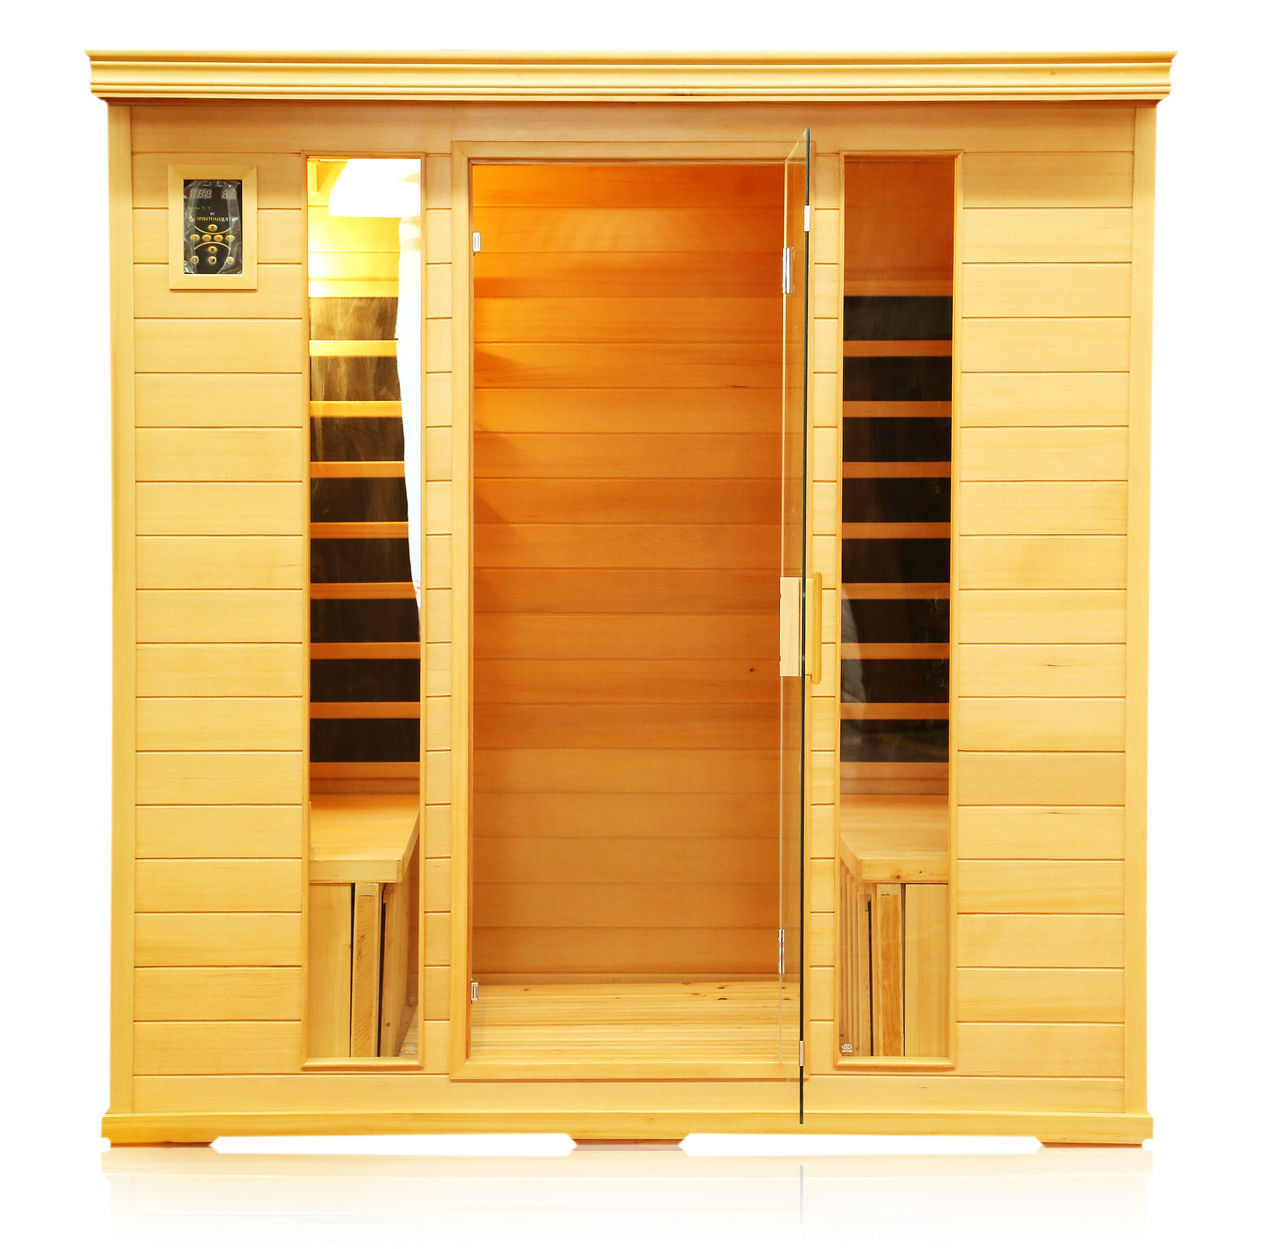 chorus himalayan salt cave infrared sauna 4person 71x48x74 - Infared Sauna